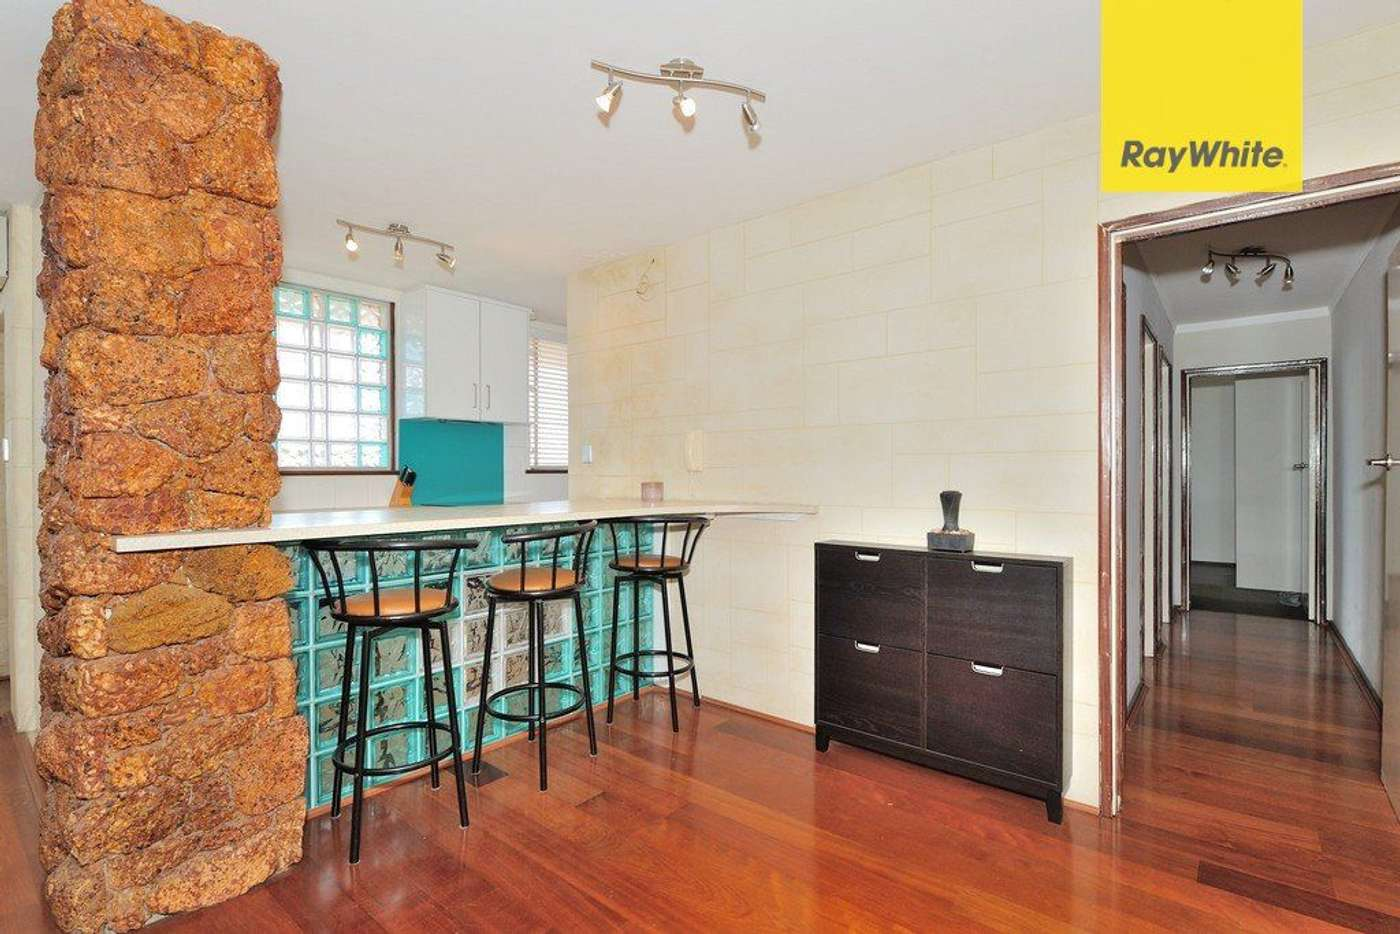 Seventh view of Homely apartment listing, 83/96 Guildford Road, Mount Lawley WA 6050